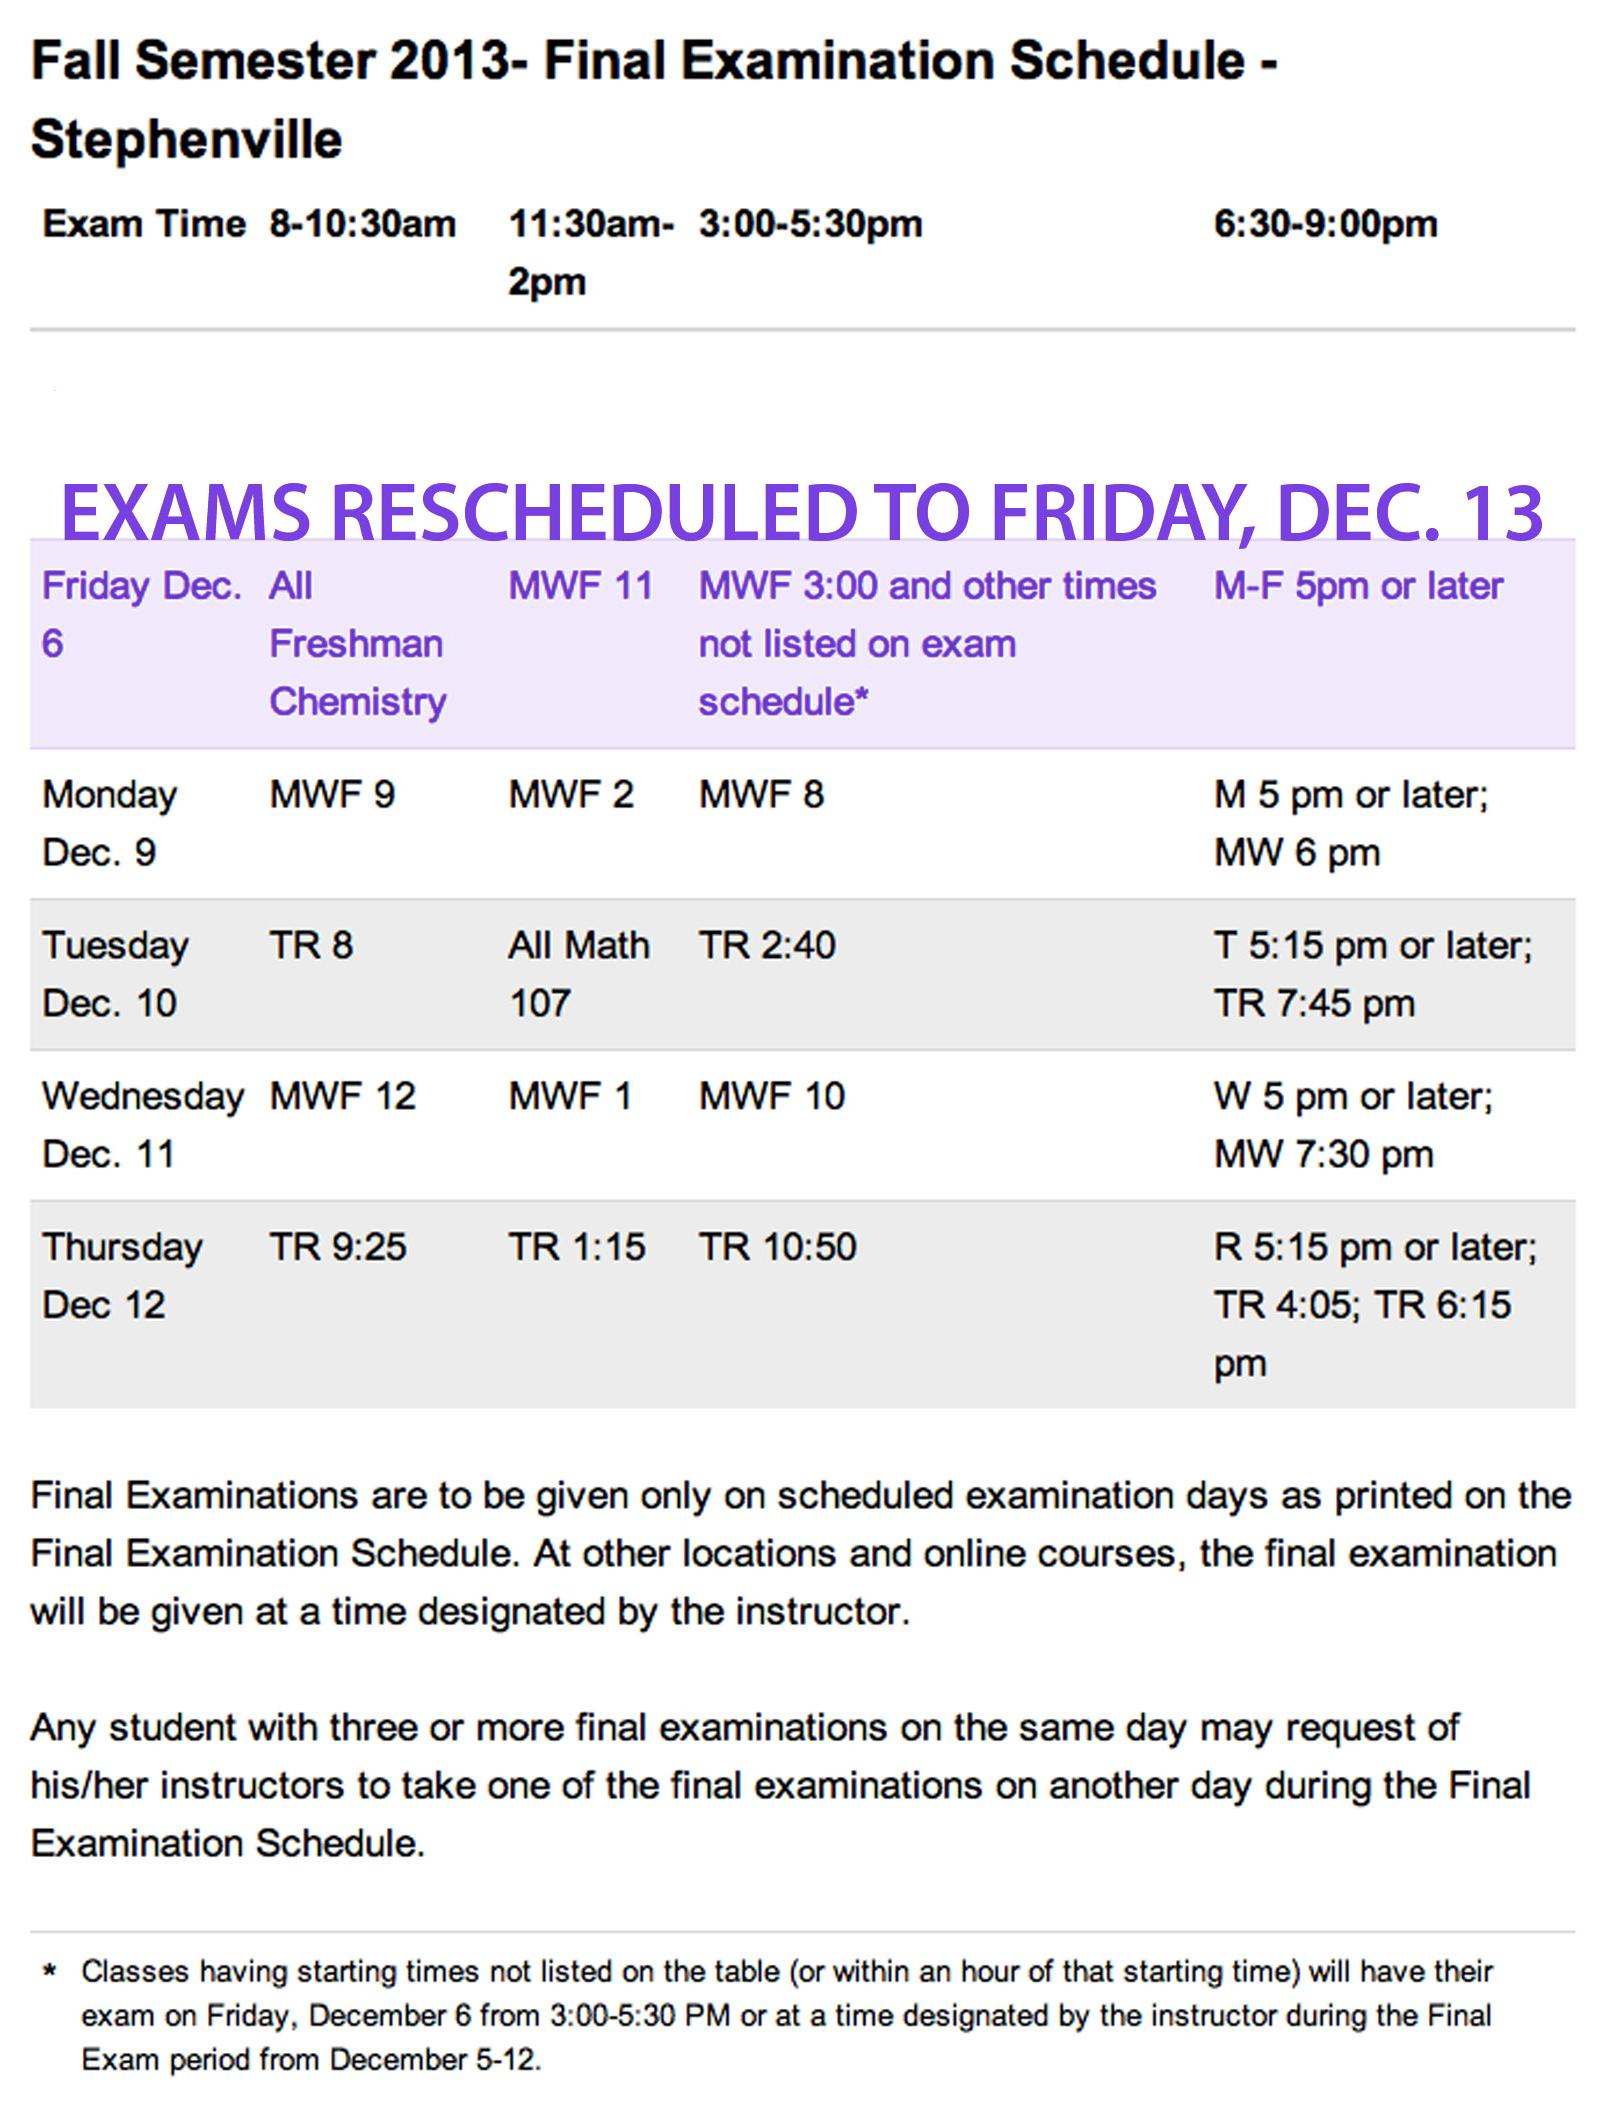 Final Exams Rescheduled